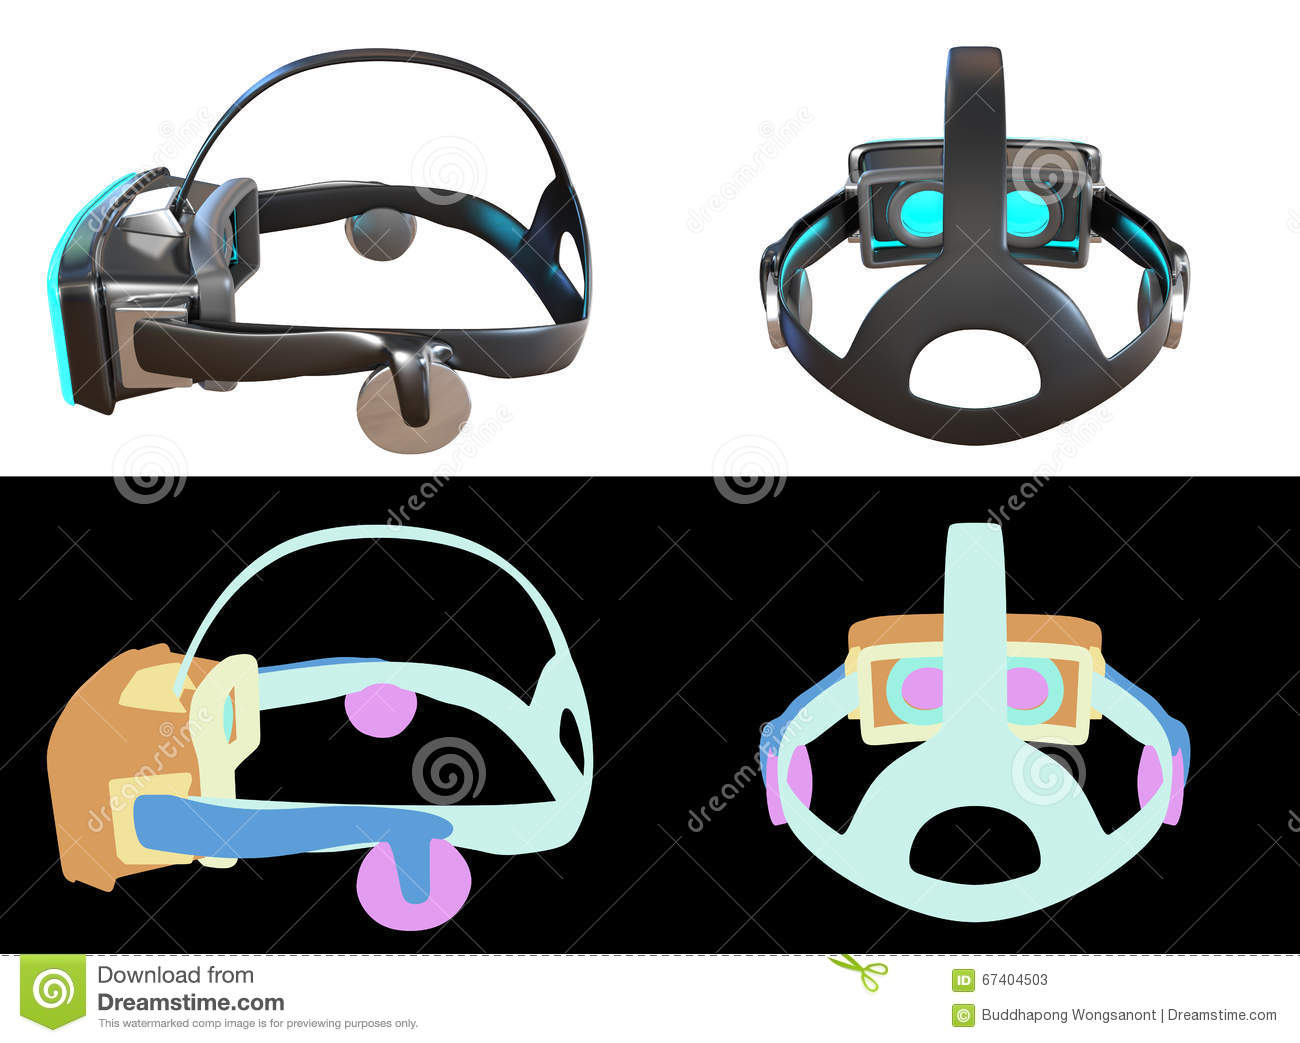 An analysis of the virtual reality concept in computer science